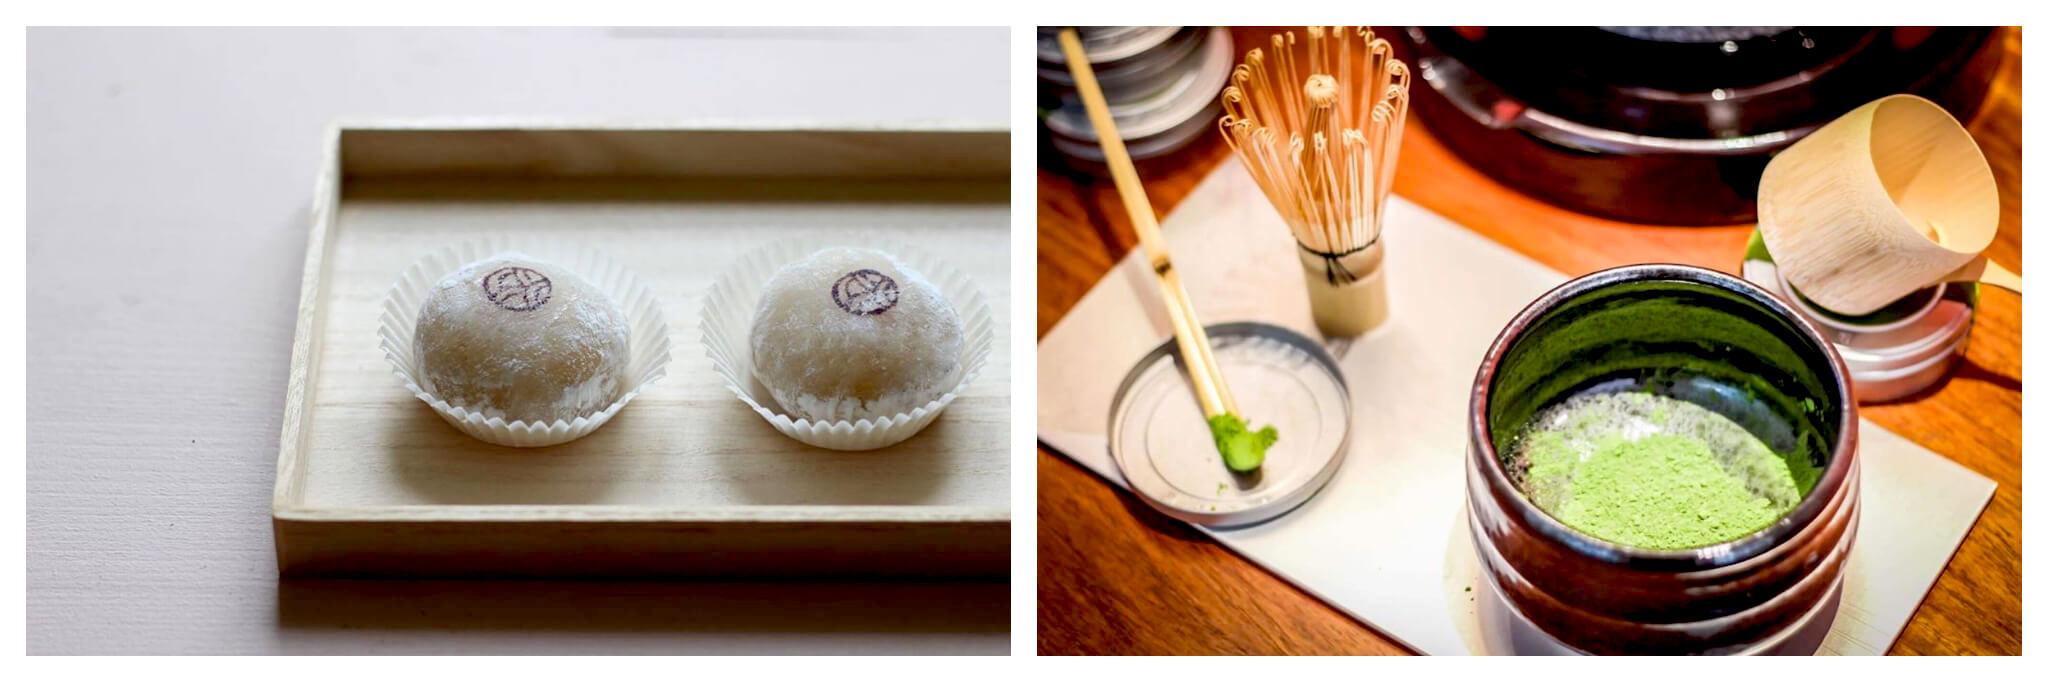 Left: two Japanese mochi desserts on a wooden tray. Right: a cup filled with green matcha tea on the right and a wooden matcha stirring tool on the left.